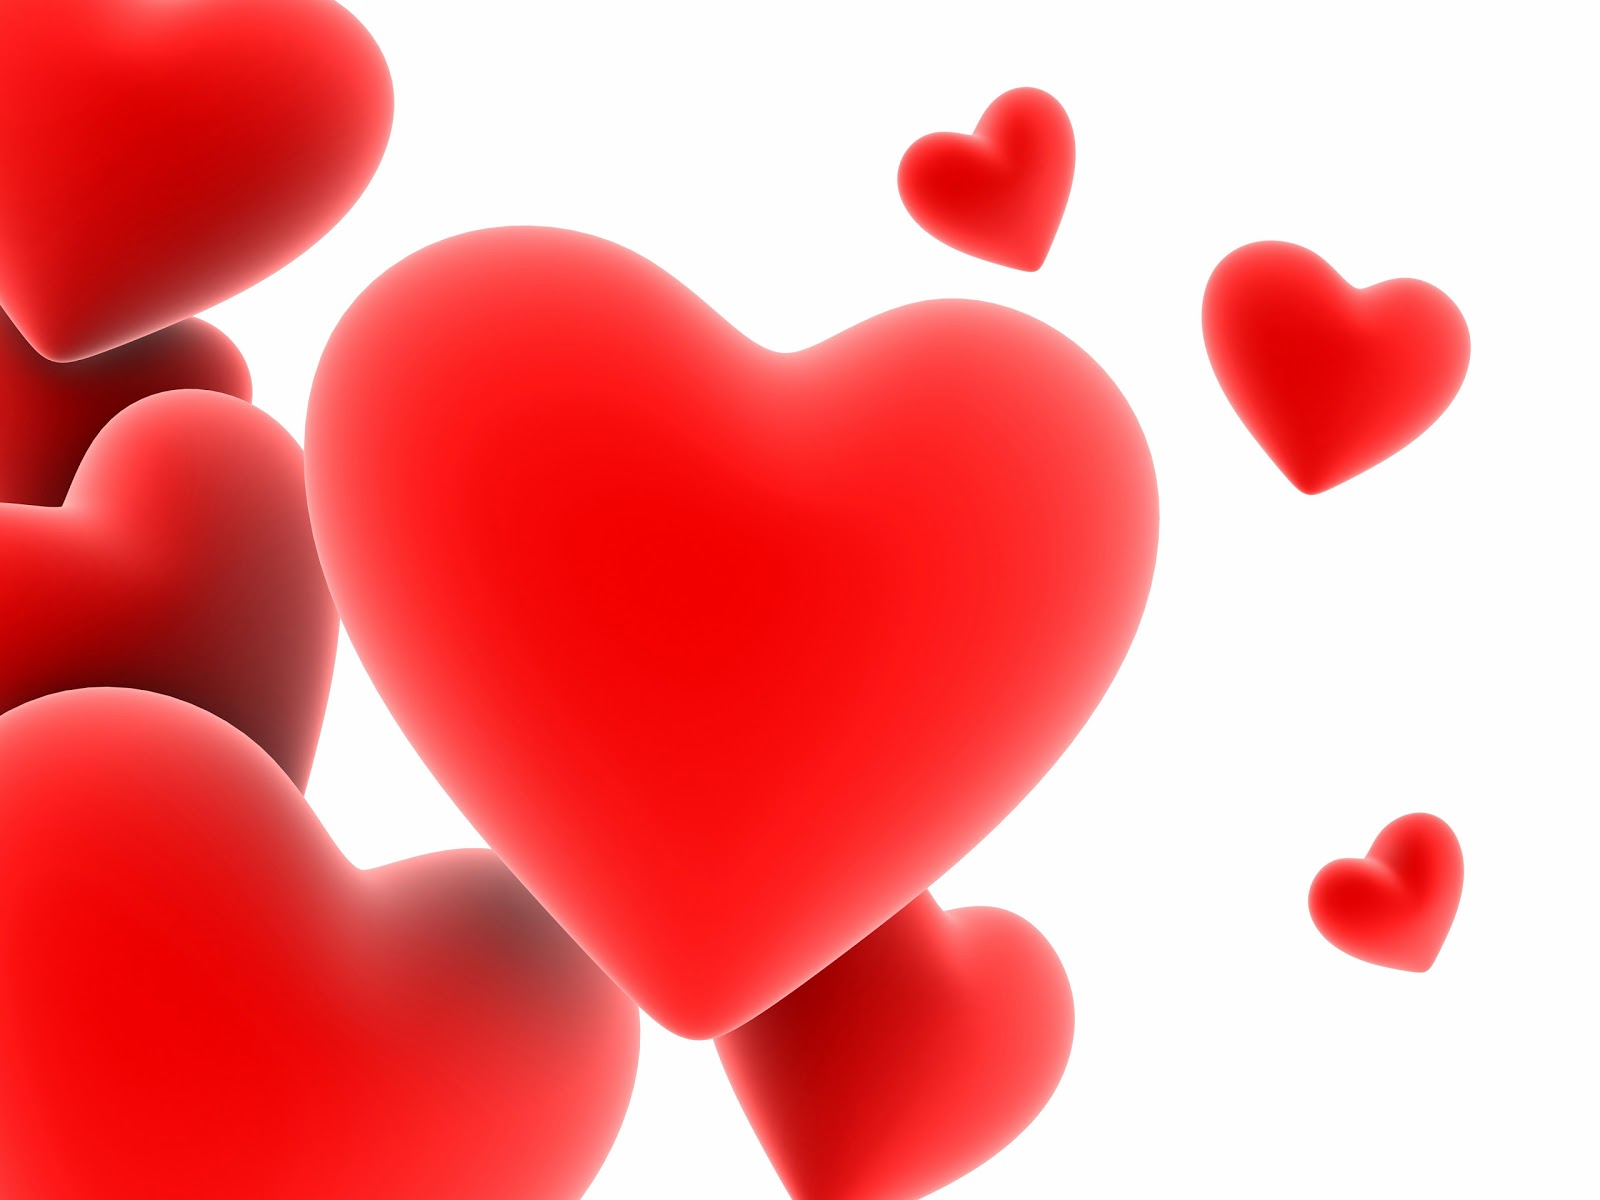 QQ Wallpapers: Love Heart HD Wallpapers